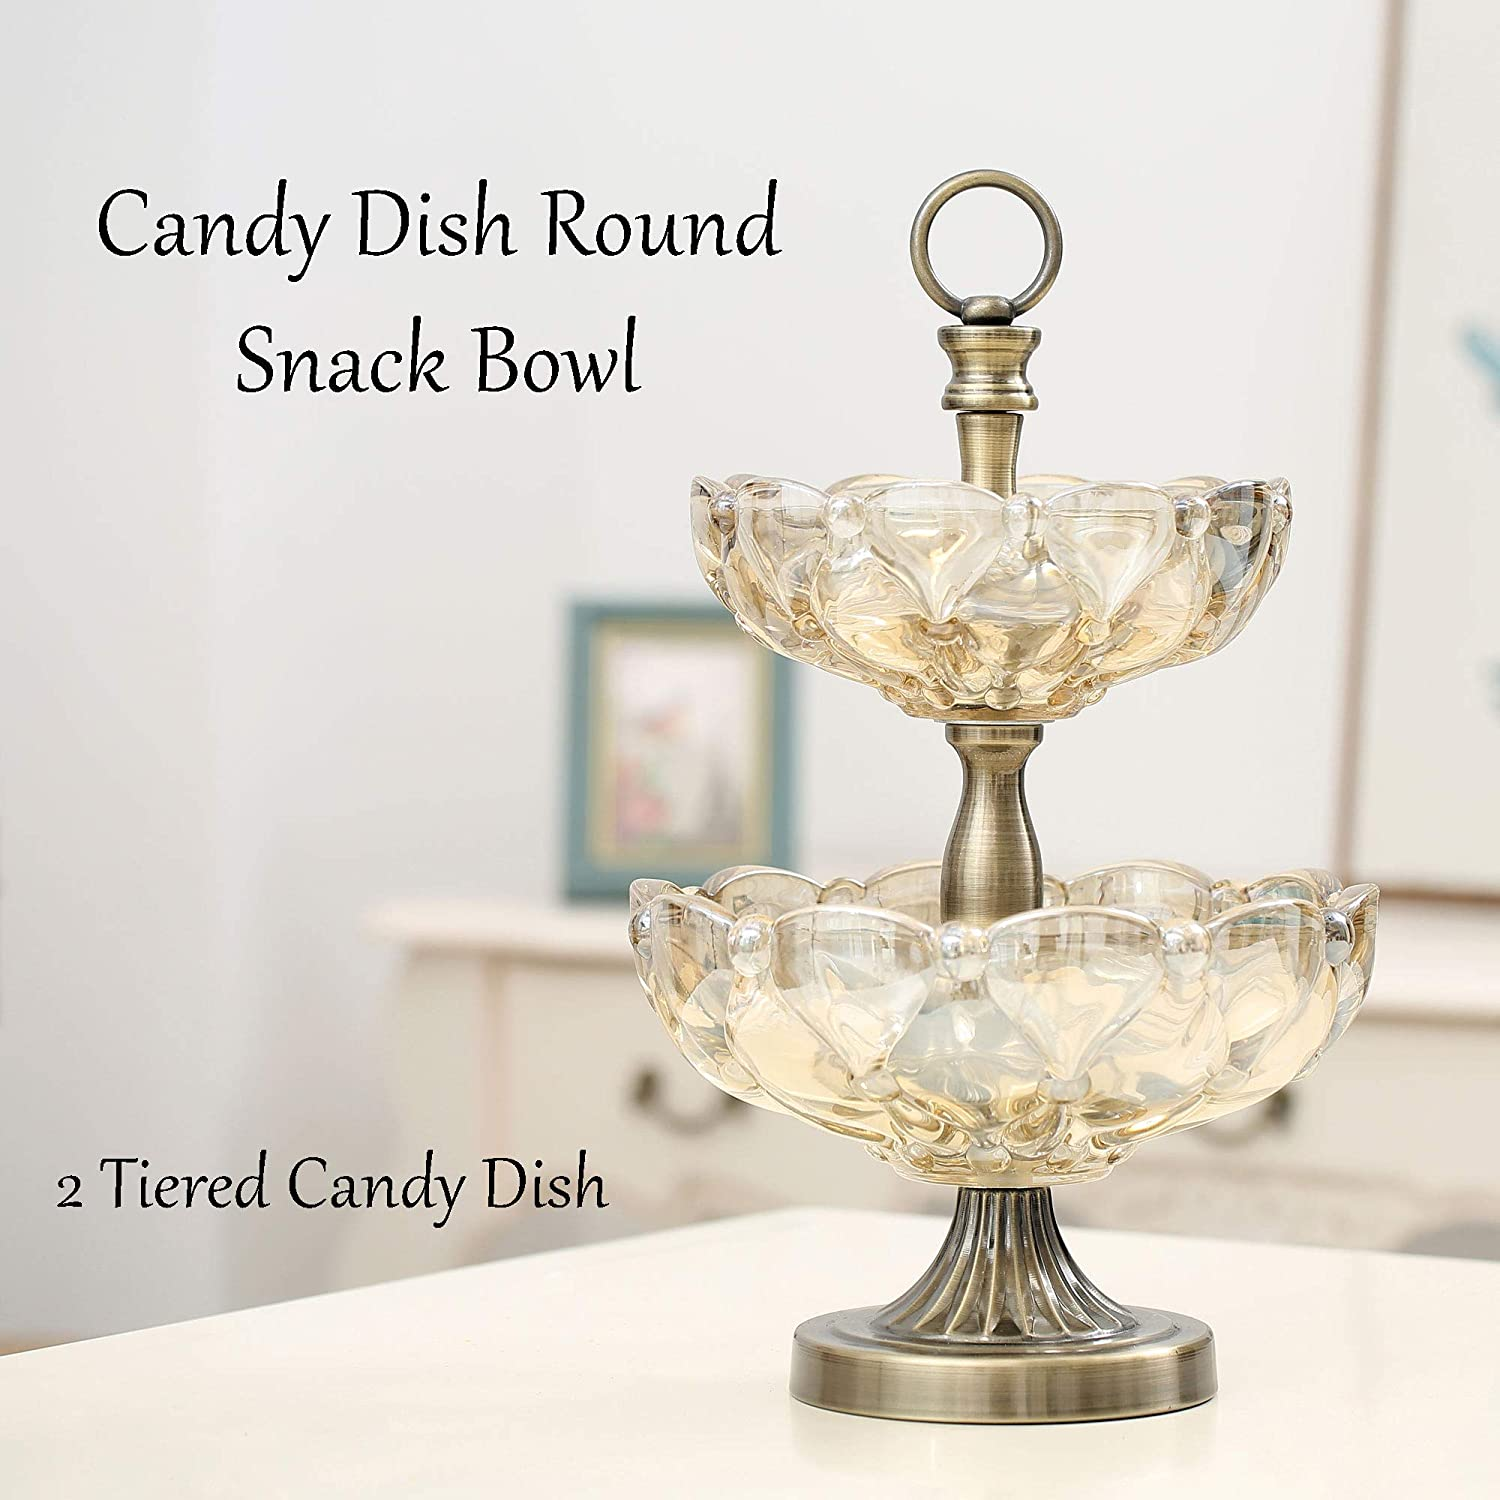 Heavy-Duty Aluminum Base Matashi Vintage Champagne Colored Glass Candy Dish Round Snack Bowls for Home PortablE Reusable Parties 2 Tiered Candy Dish, Pearl Belle Office